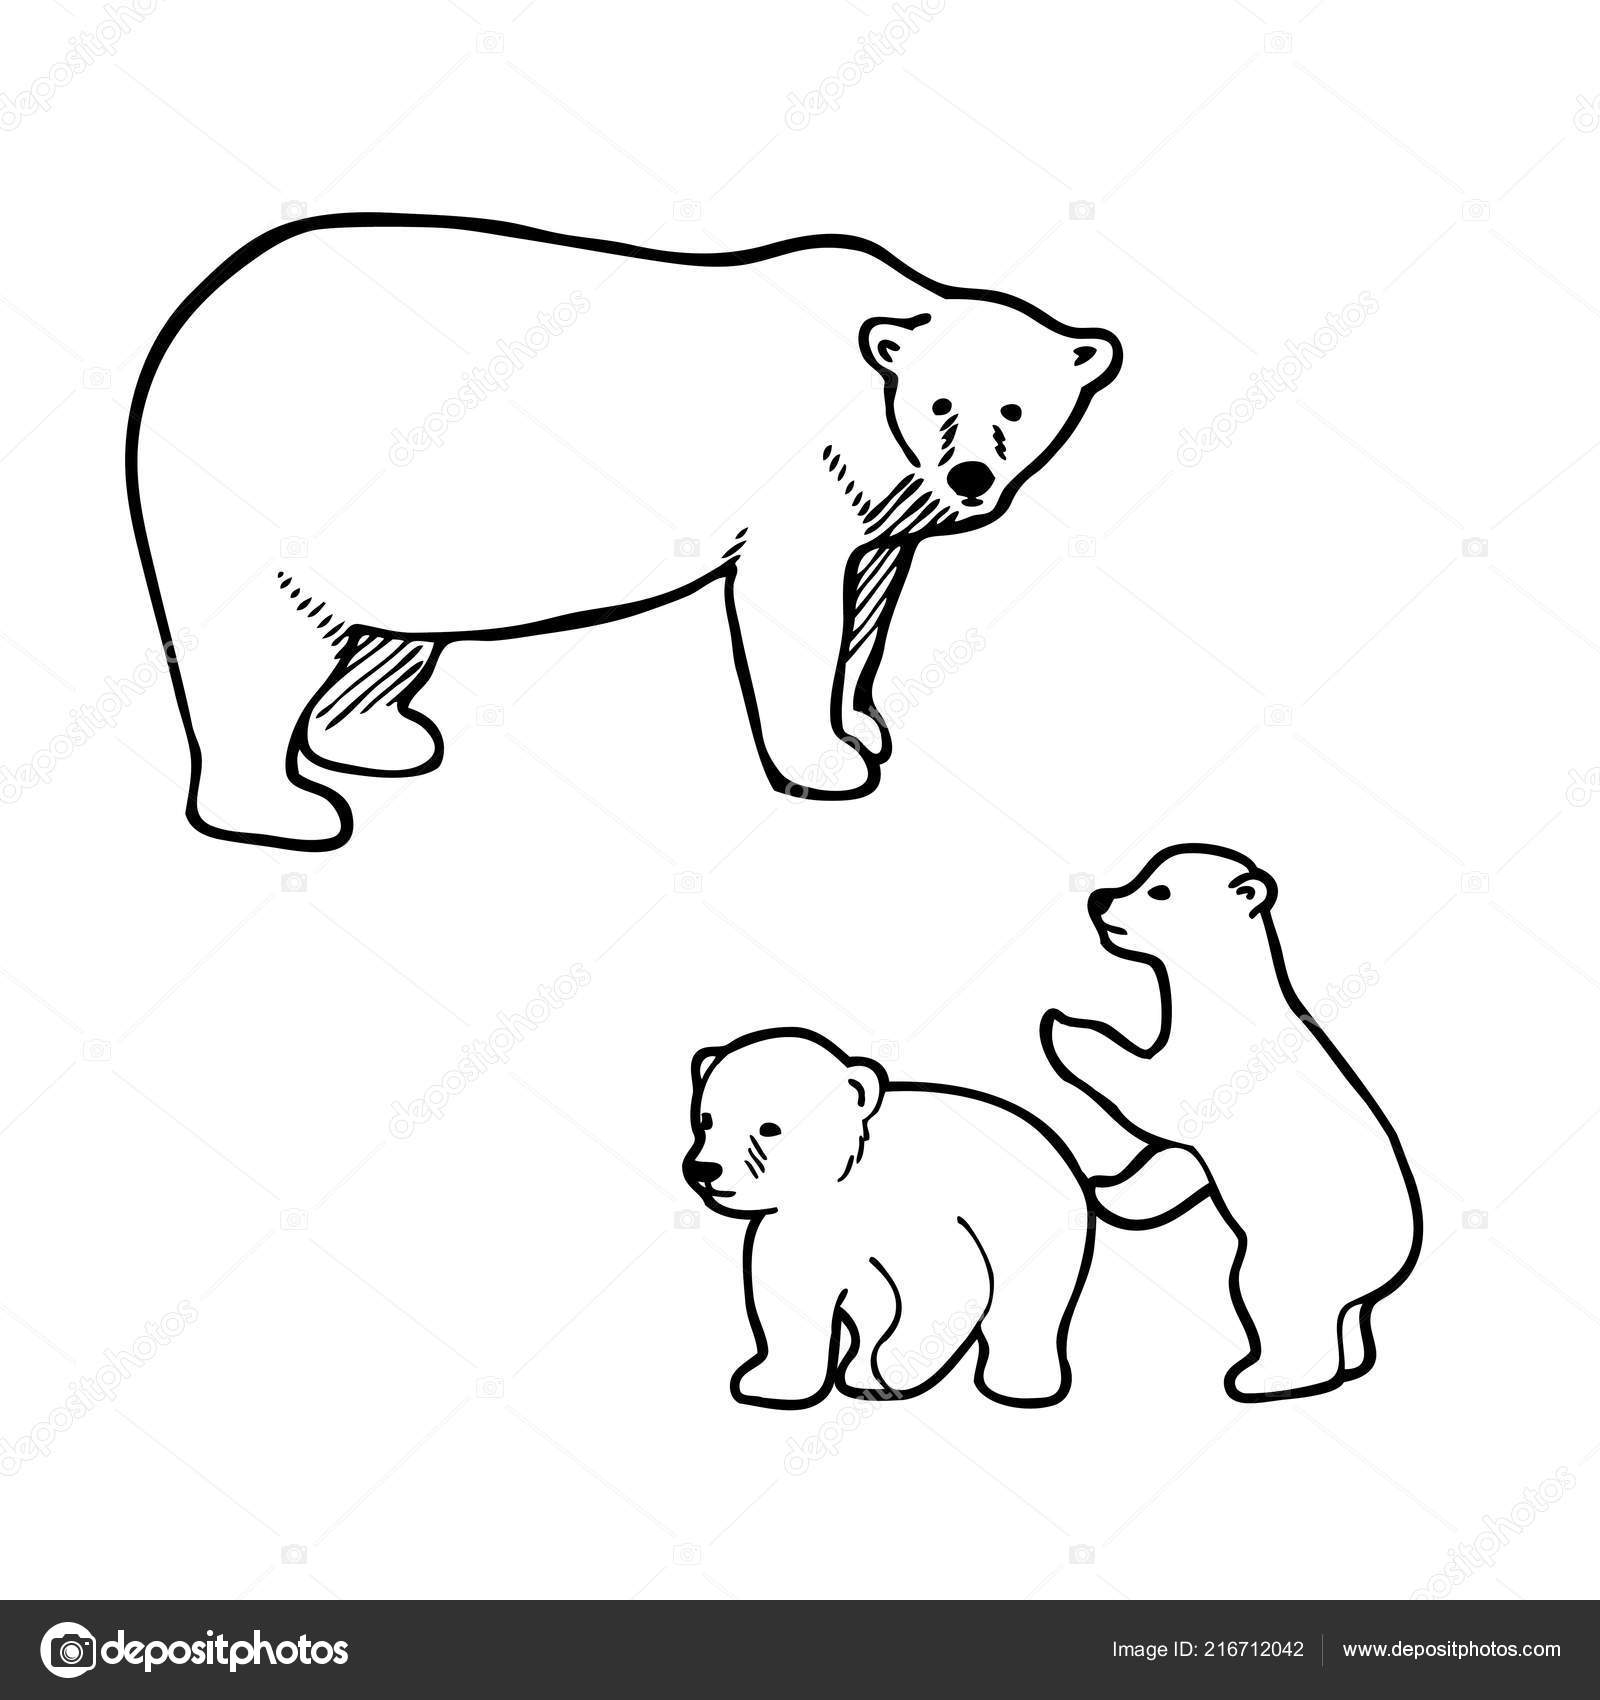 outline of a polar bear polar bear outline drawing free download on clipartmag of polar outline bear a